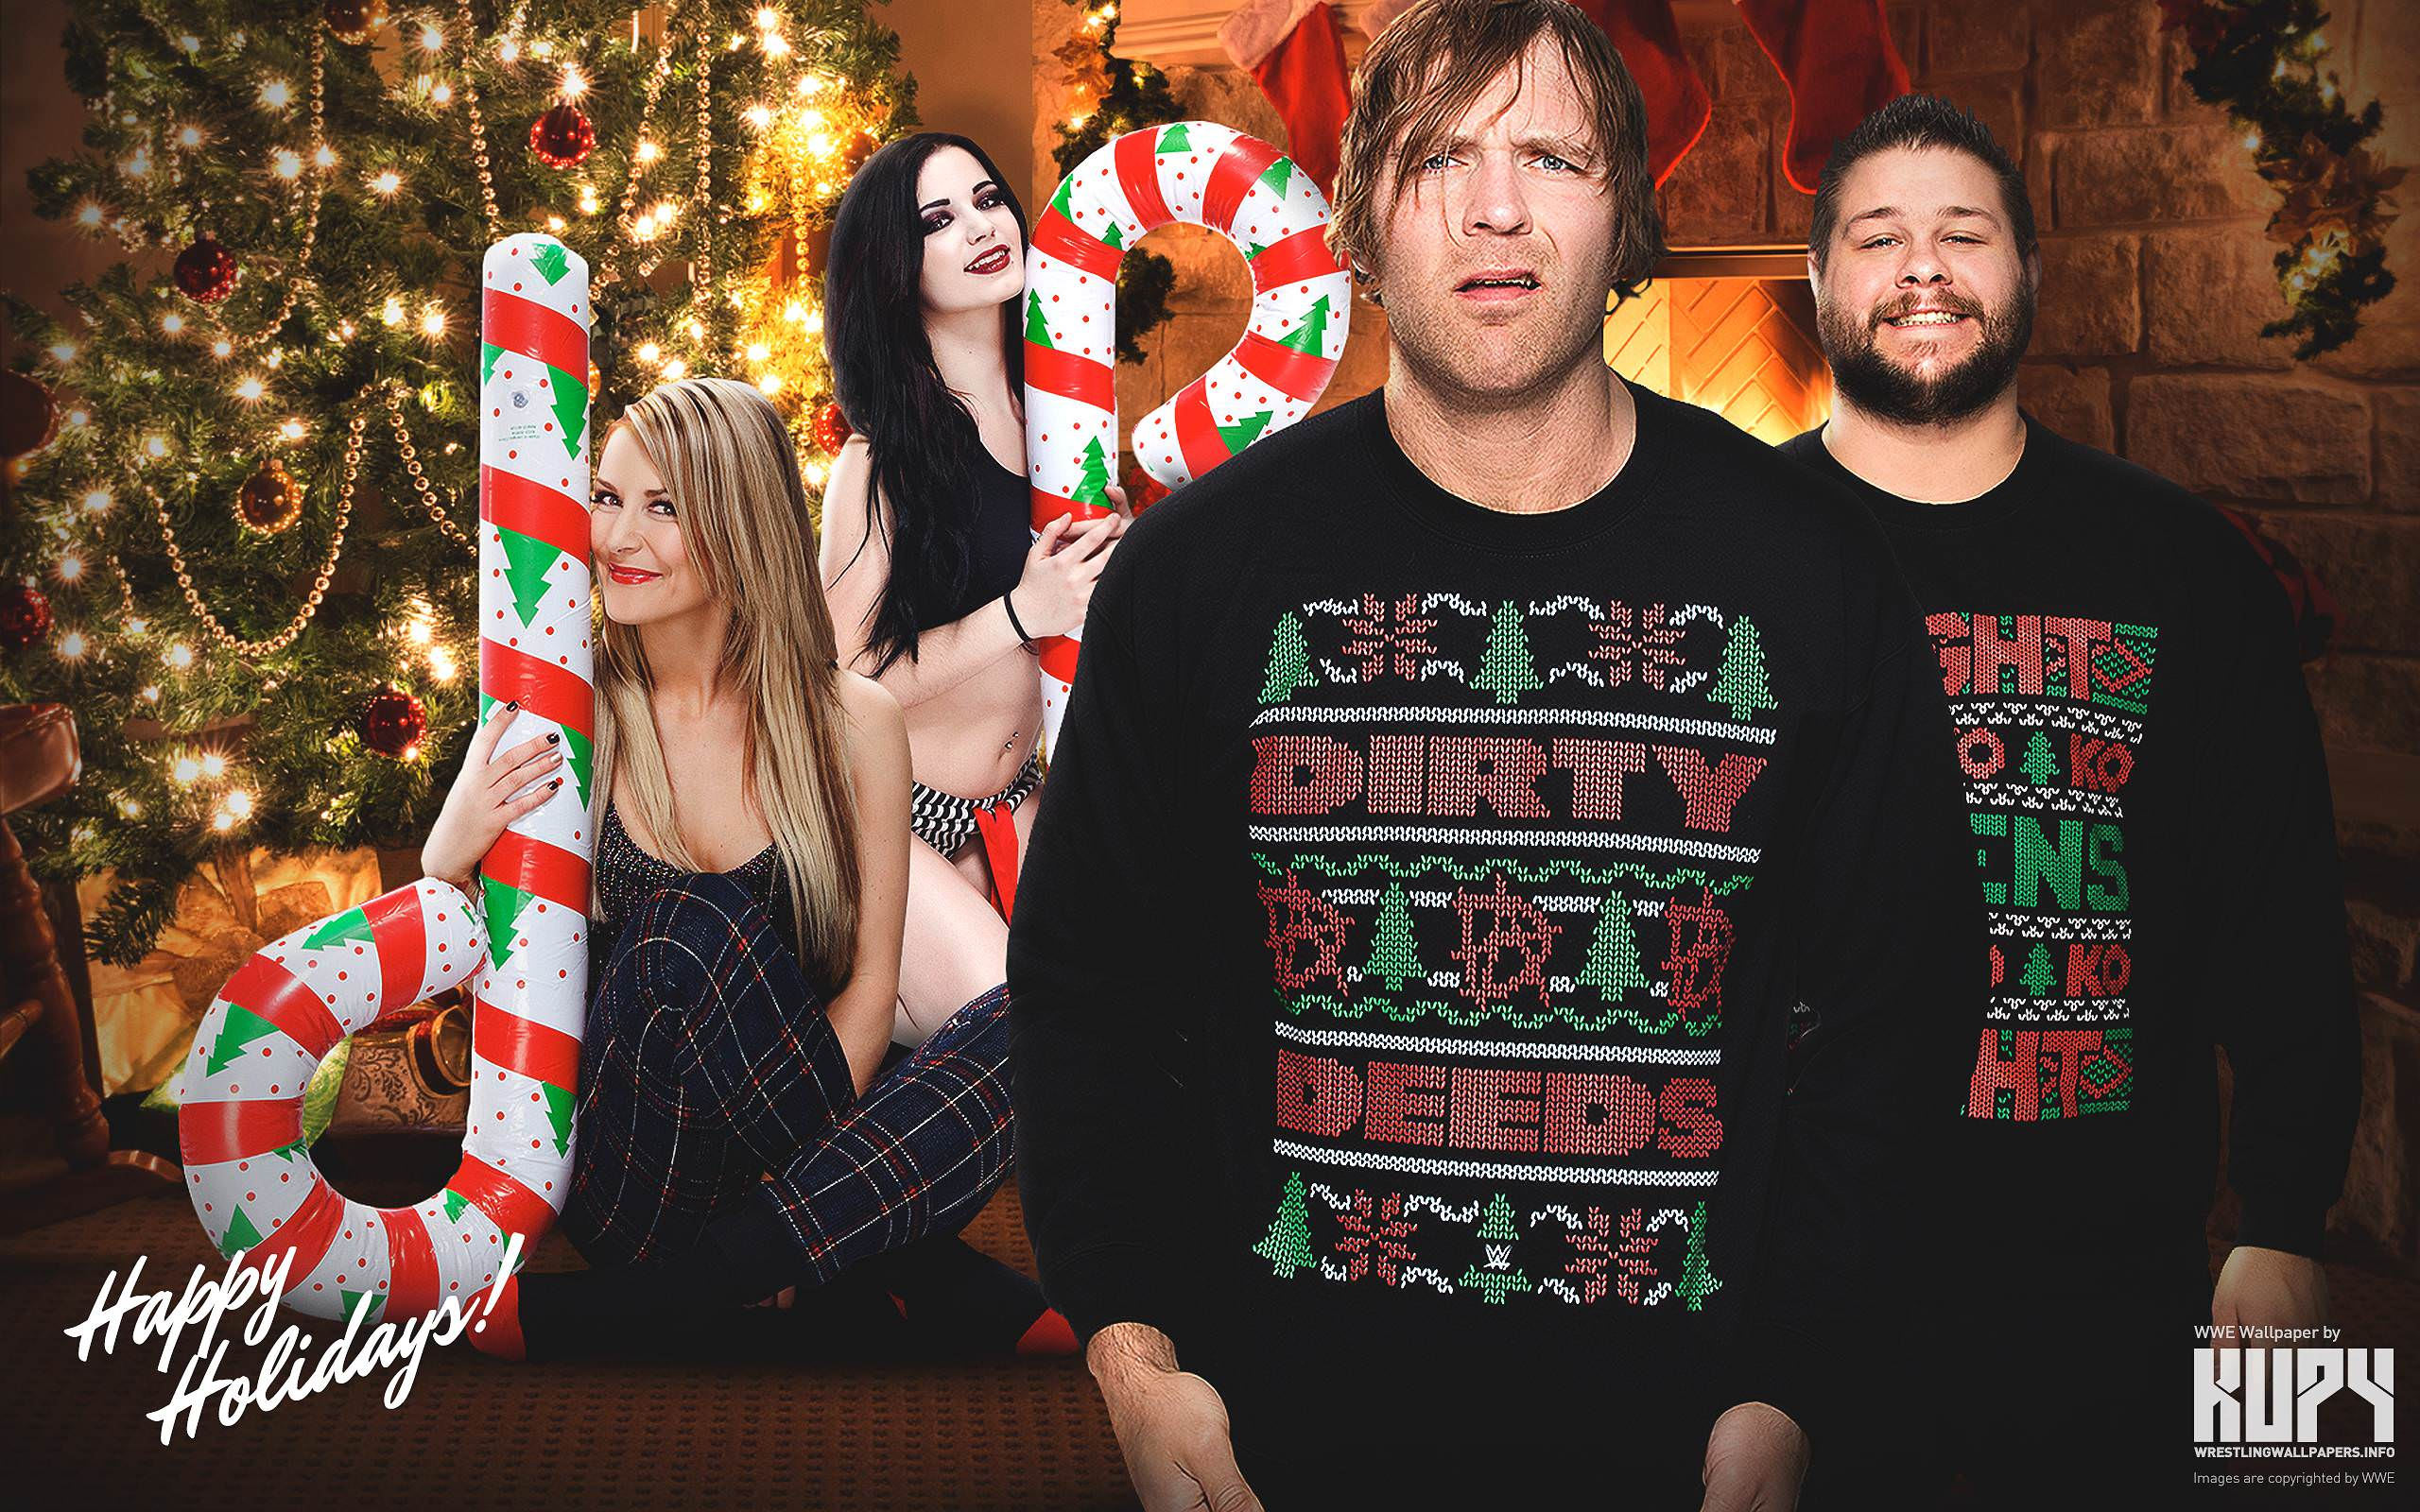 NEW Happy Holidays 2015 WWE wallpaper! - Kupy Wrestling Wallpapers ...